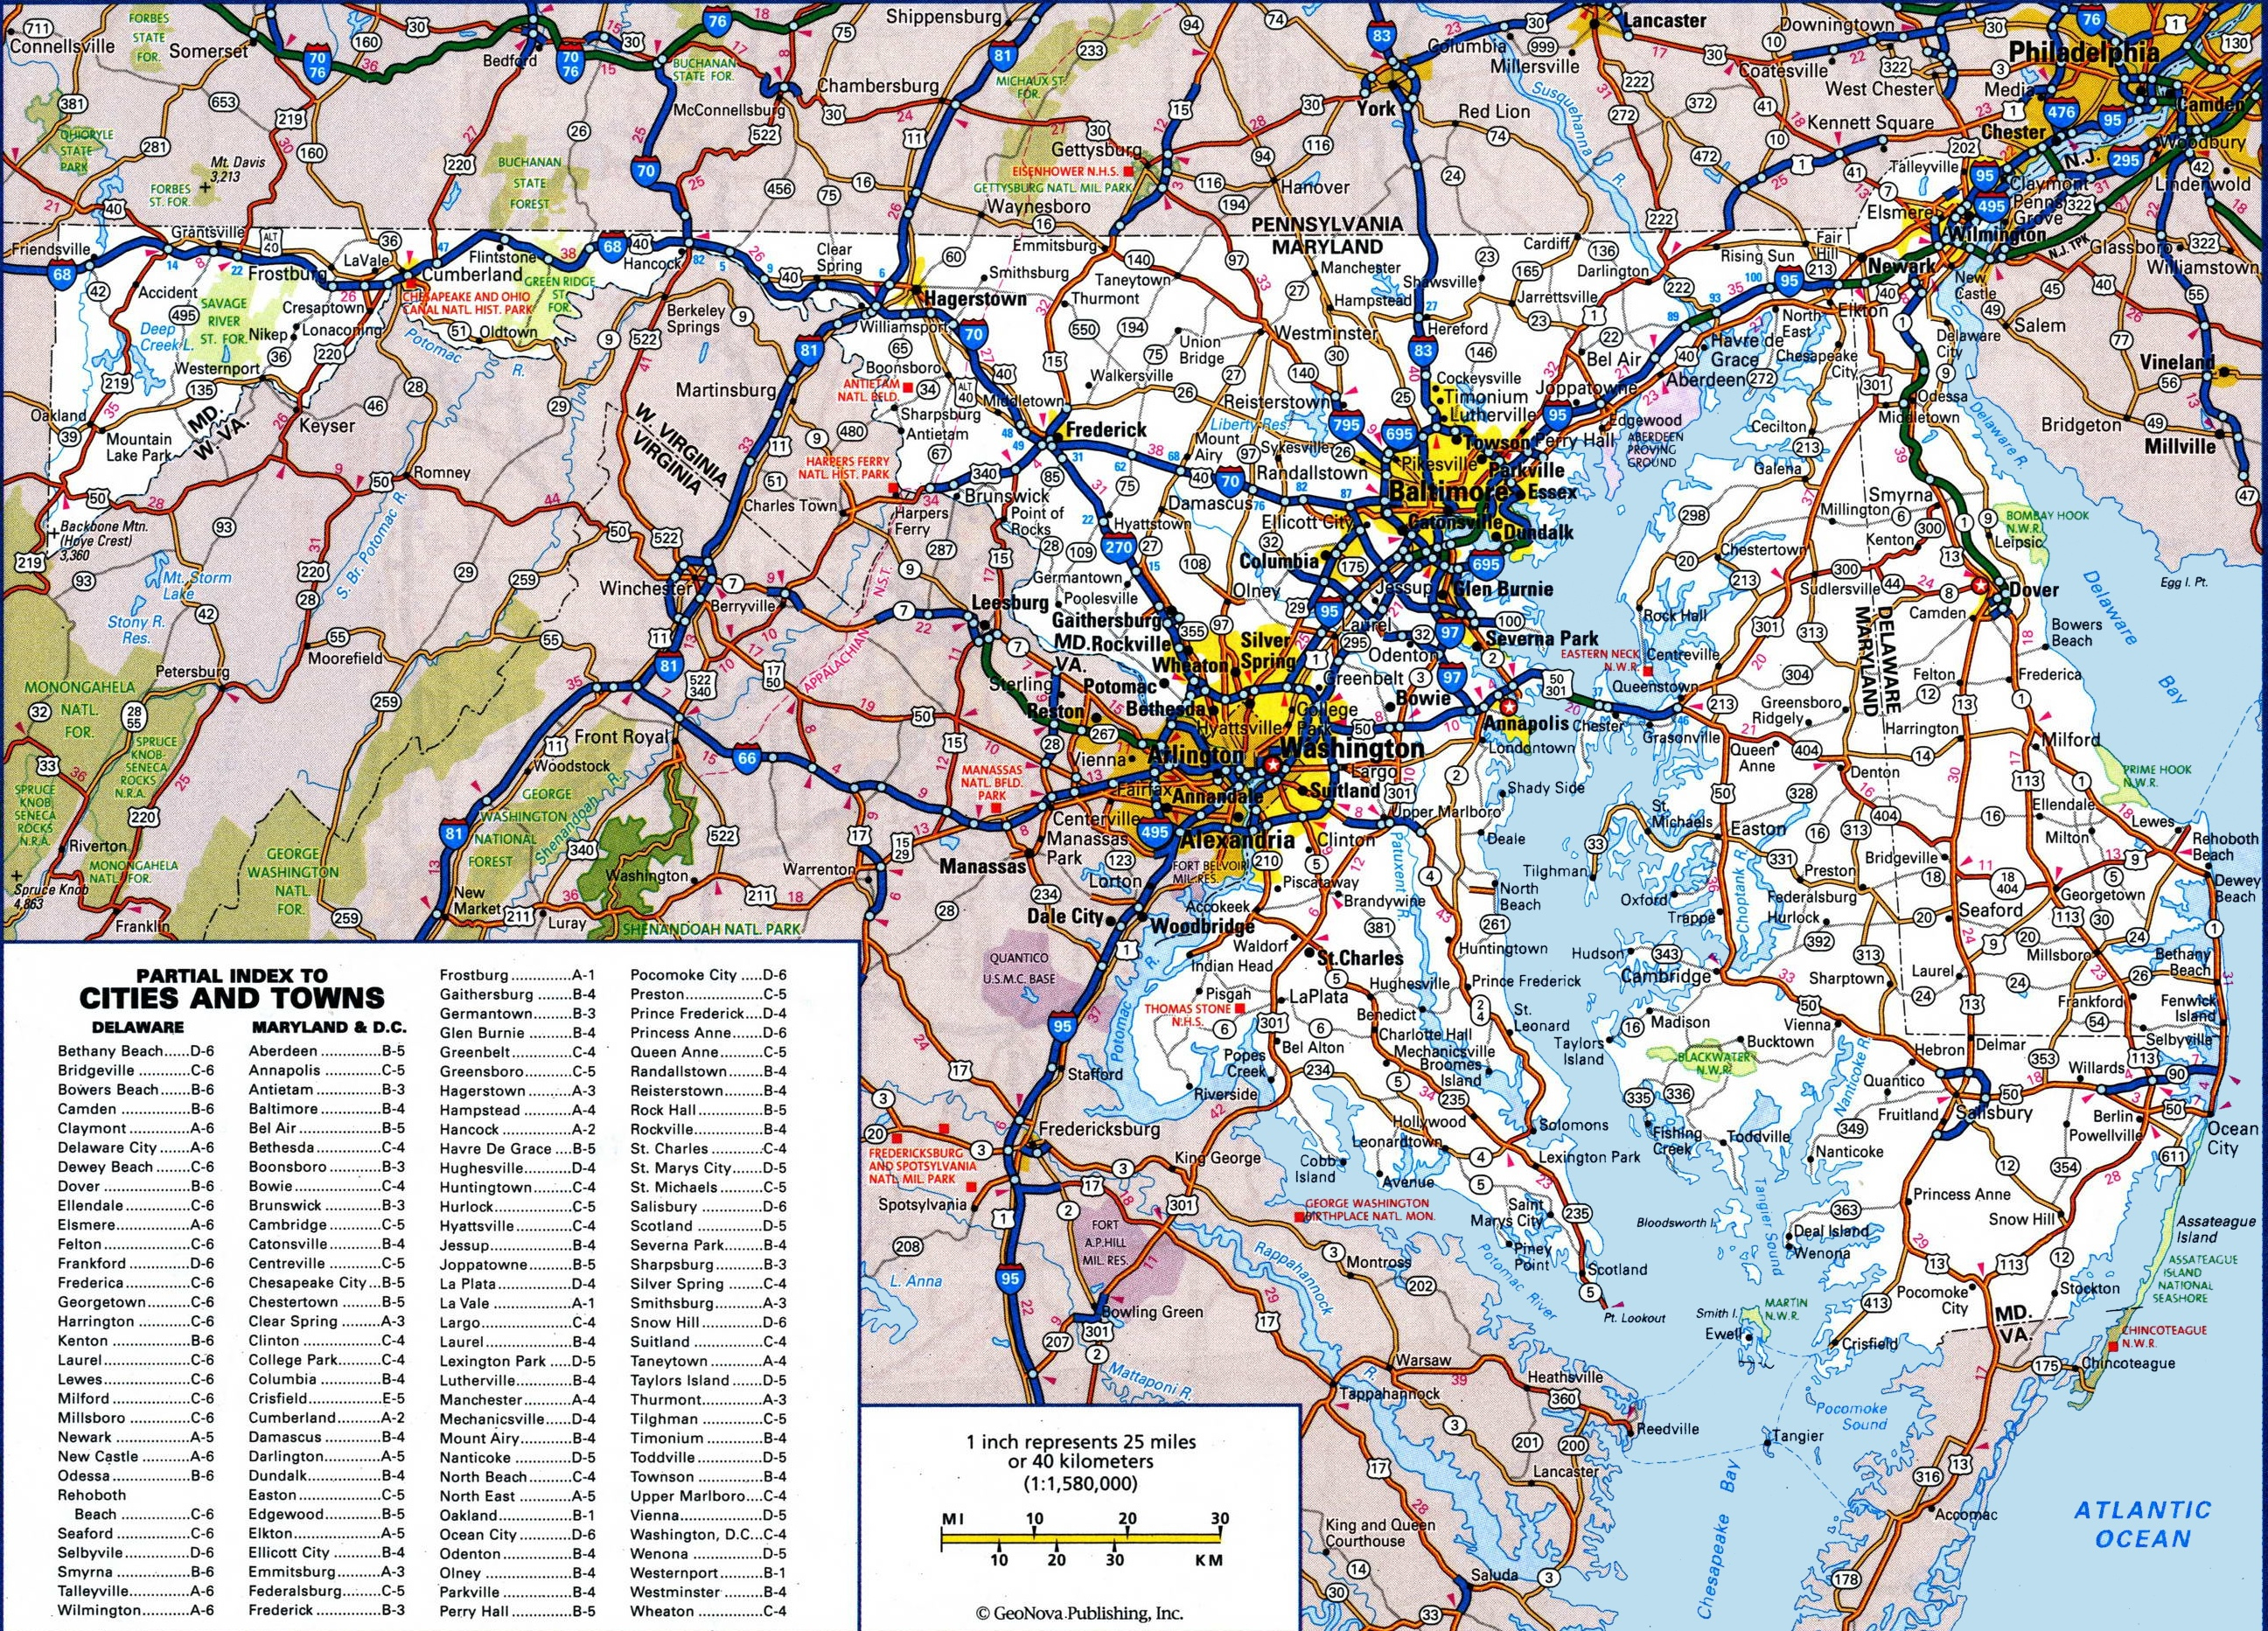 Large Detailed Map Of Maryland With Cities And Towns - Free Printable Map Of Maryland